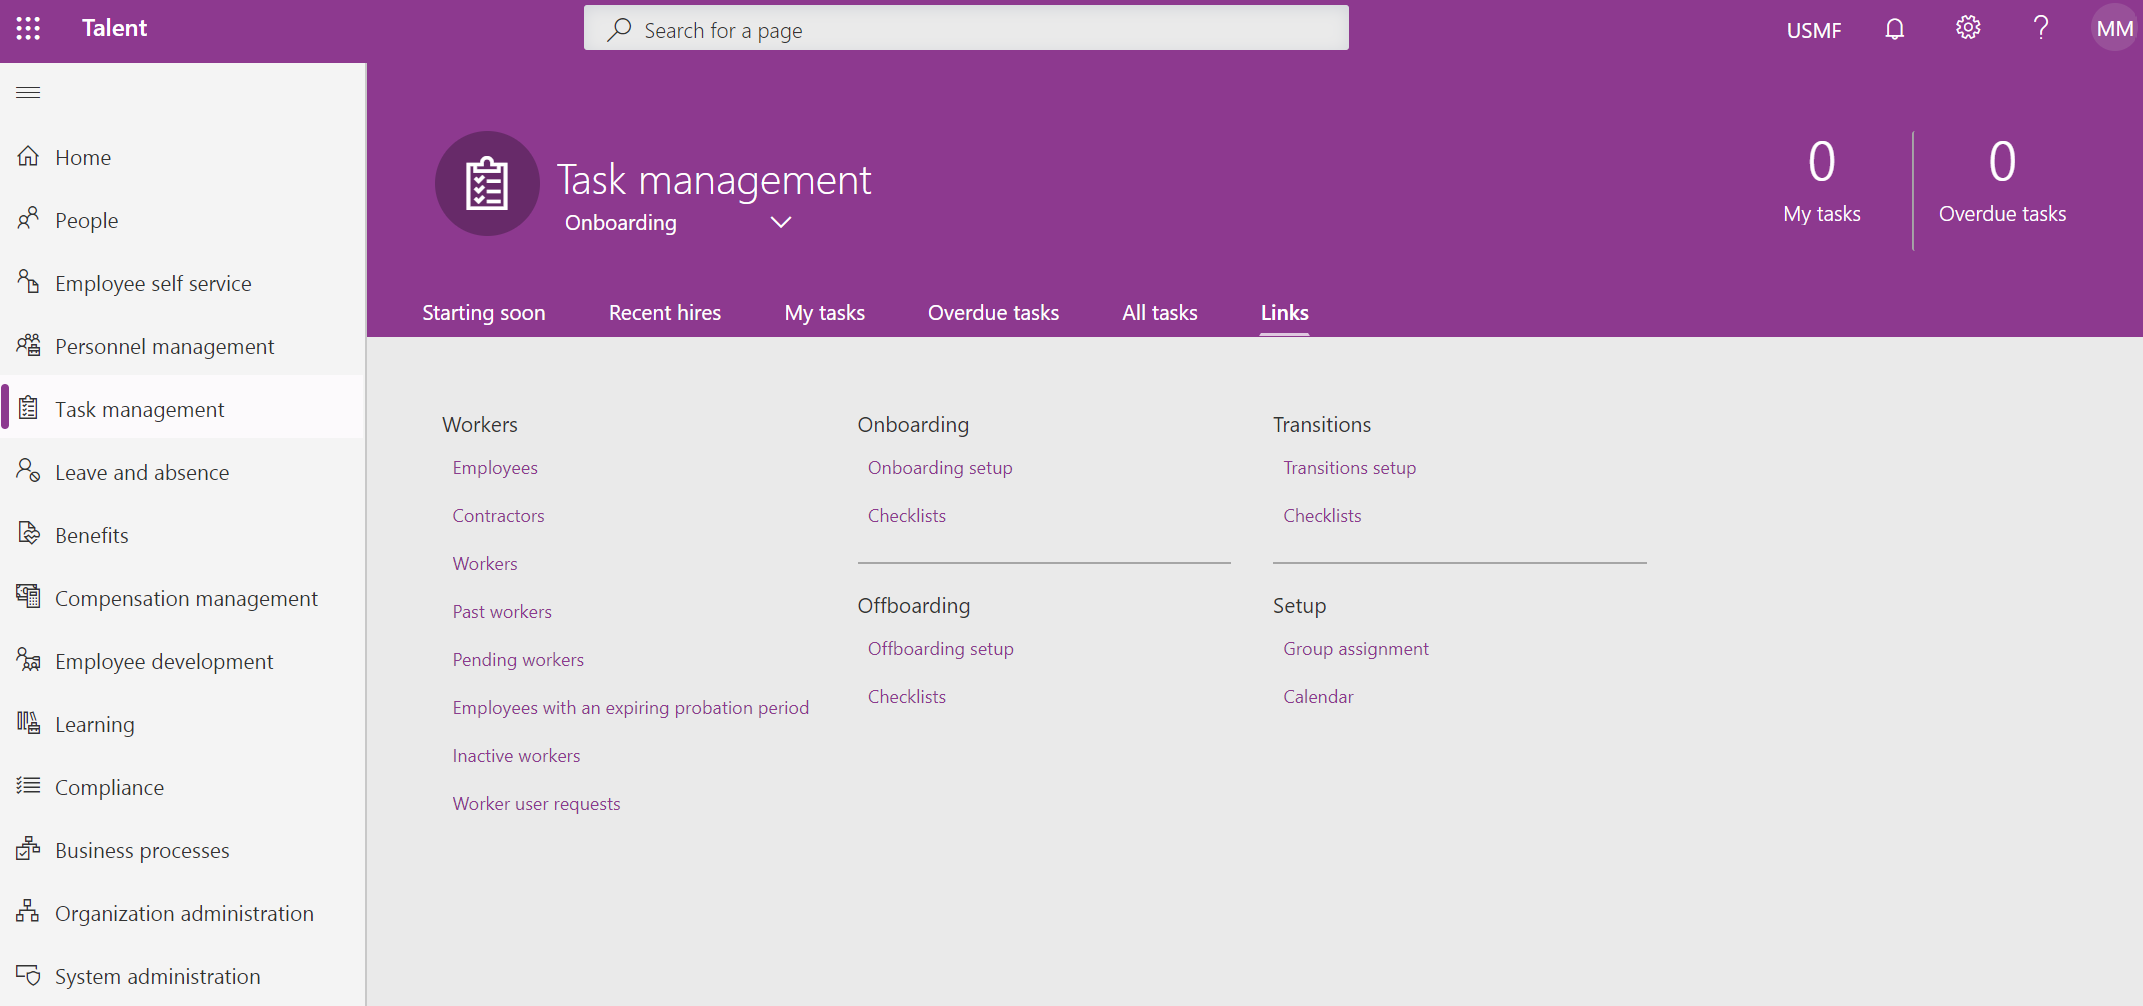 Task management - links